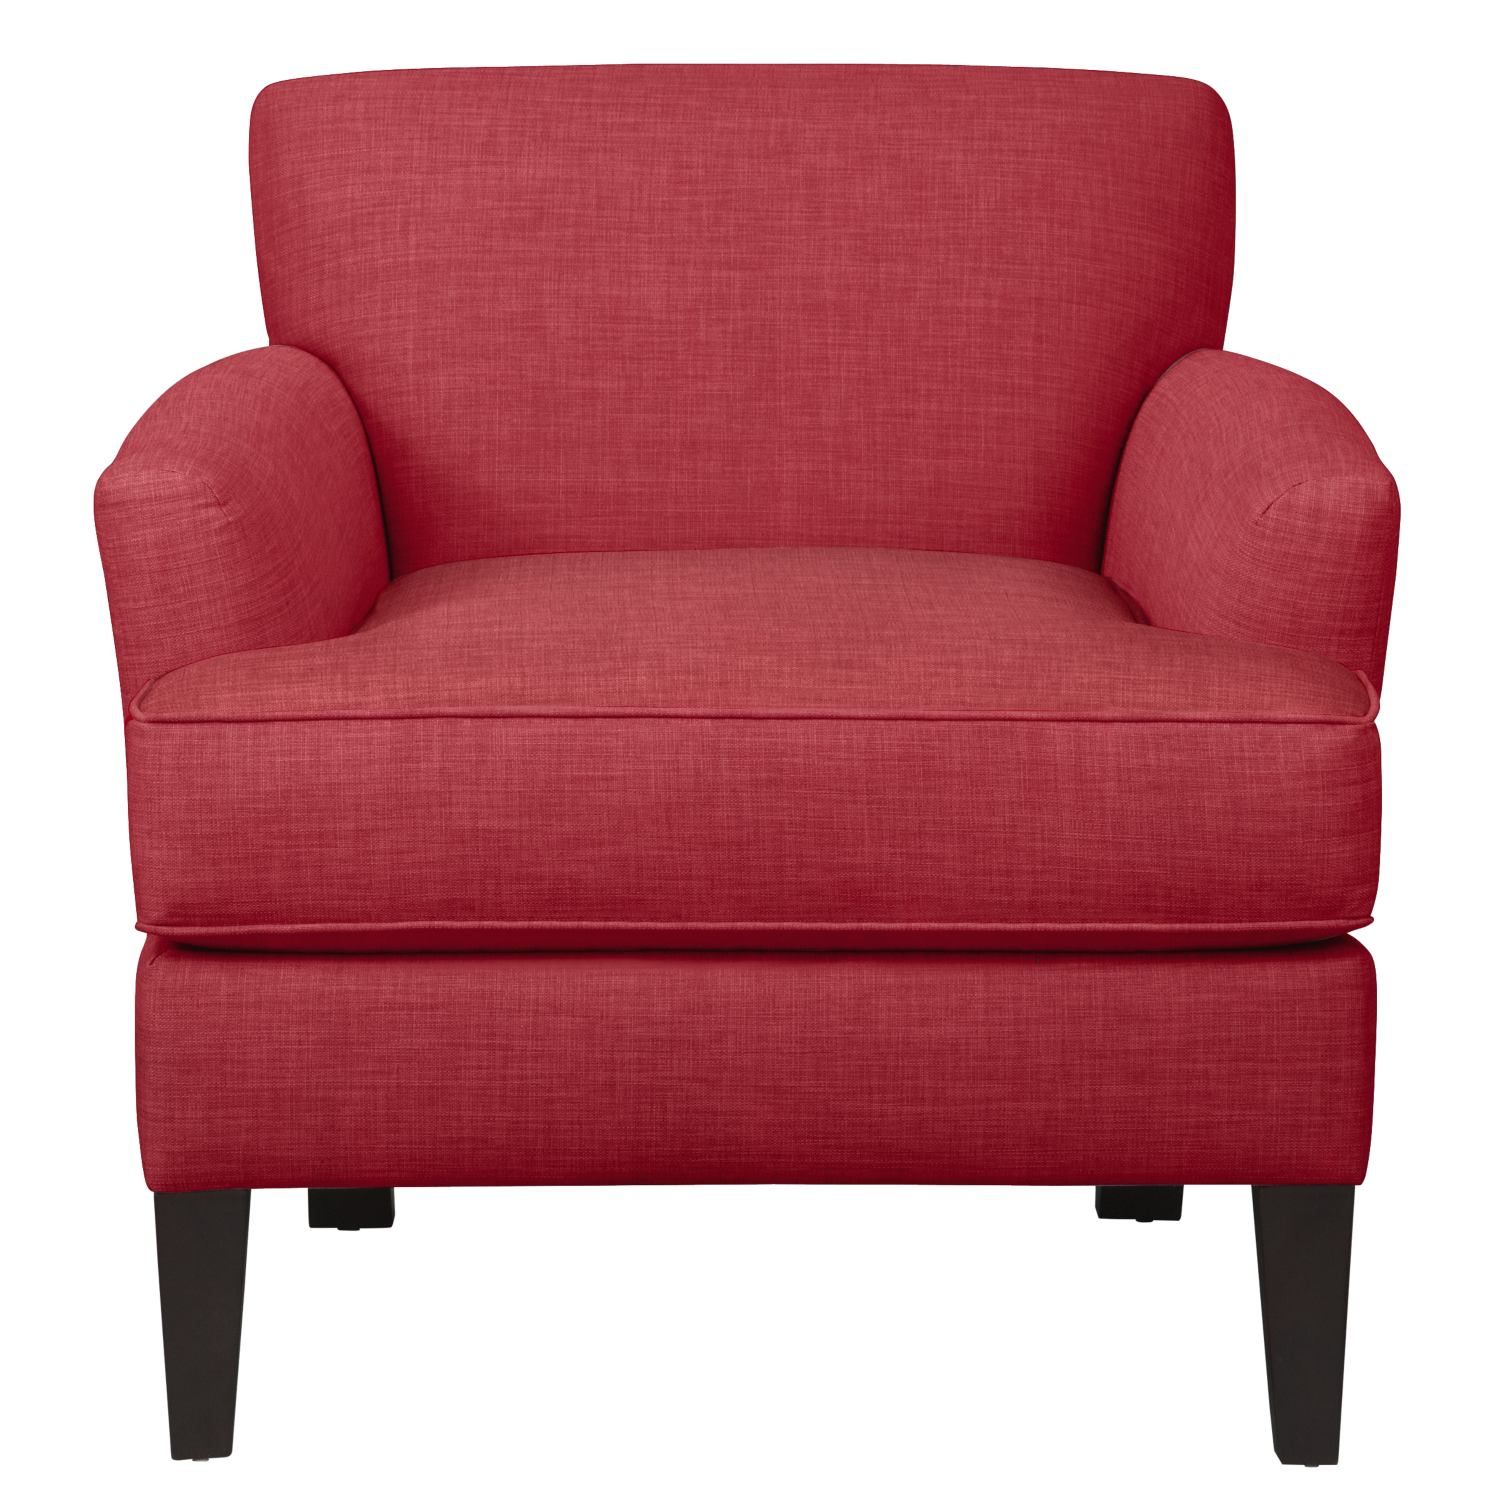 Living Room Furniture - Marcus Chair w/ Oakley III Tomato Fabric